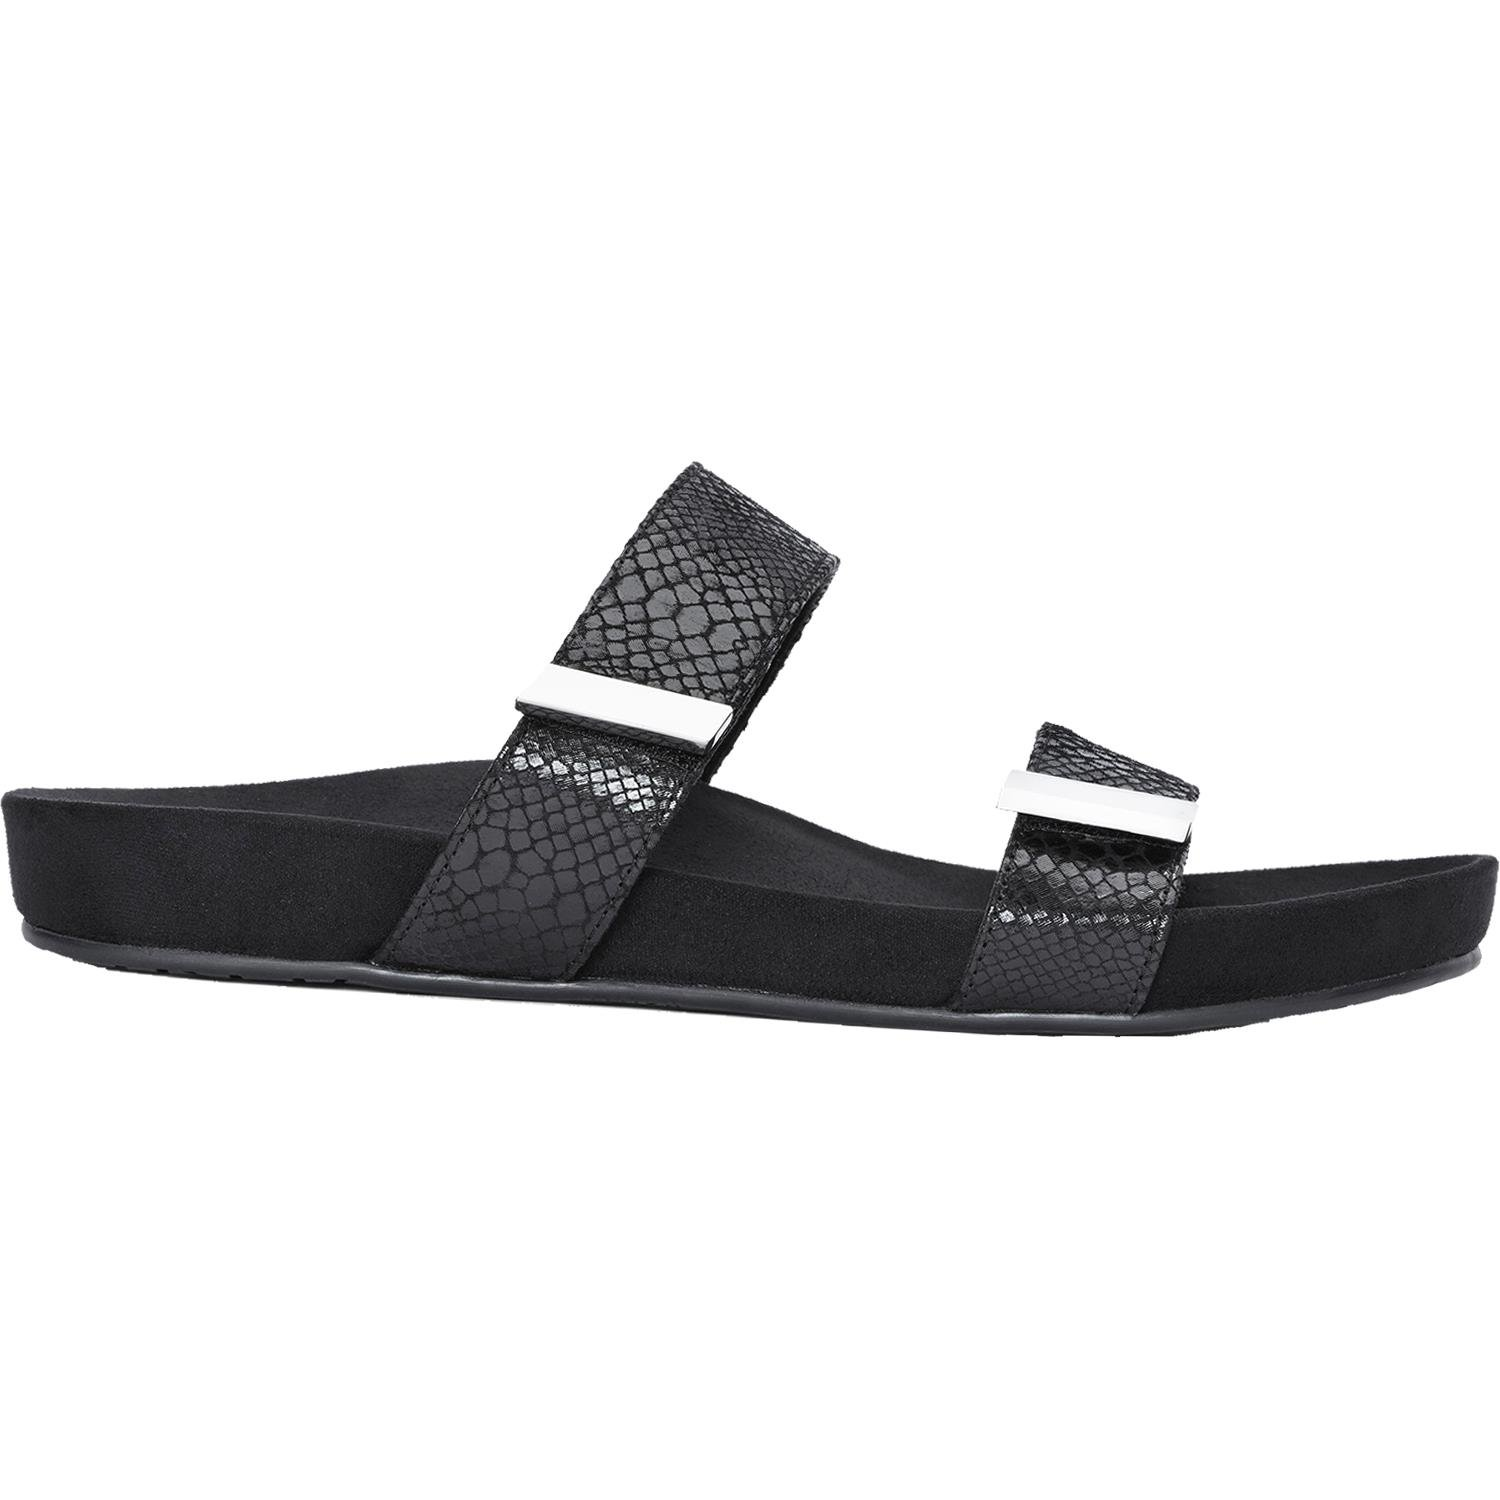 Vionic Womens Grace Jura Slide Sandal Black Snake Size 11 by Vionic